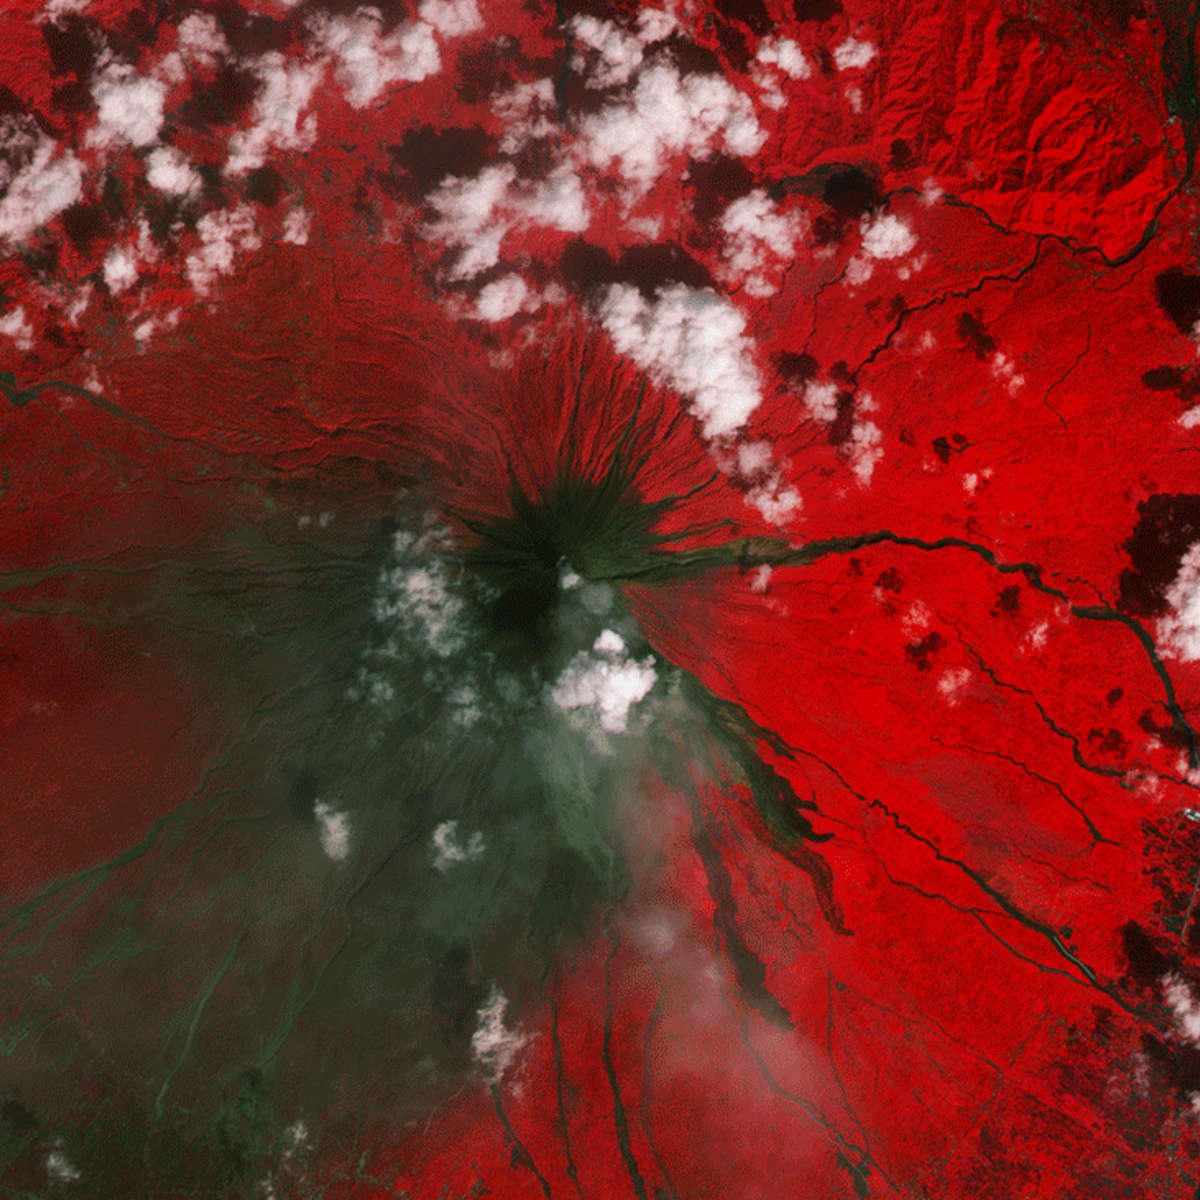 Infrared observations of the Mayon volcano by the Copernicus satellite shows vegetation (red) and the damage done by the latest eruption of lava (green/brown).  Credit: ESA